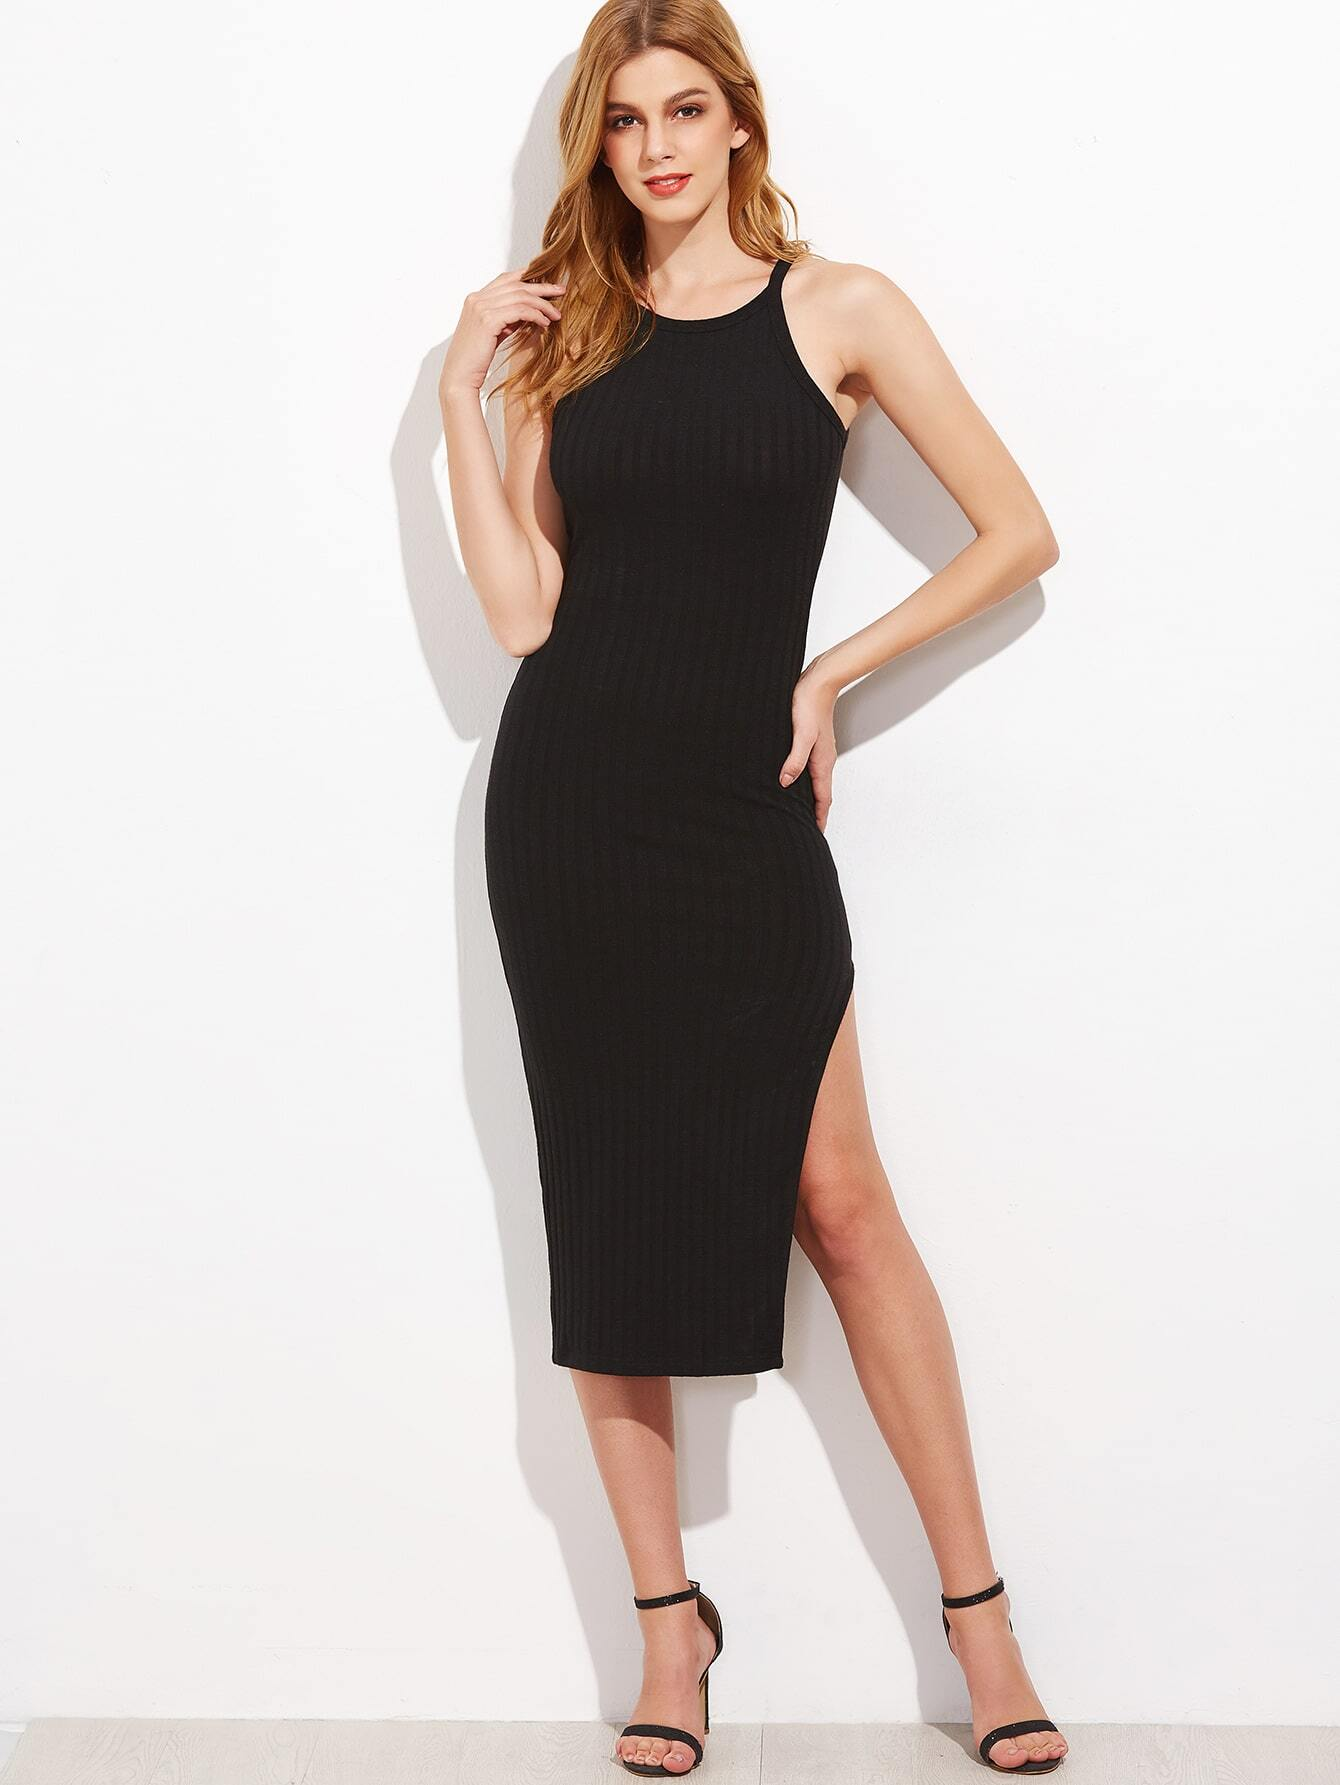 Black Side Slit Ribbed Cami Dress dress161118727